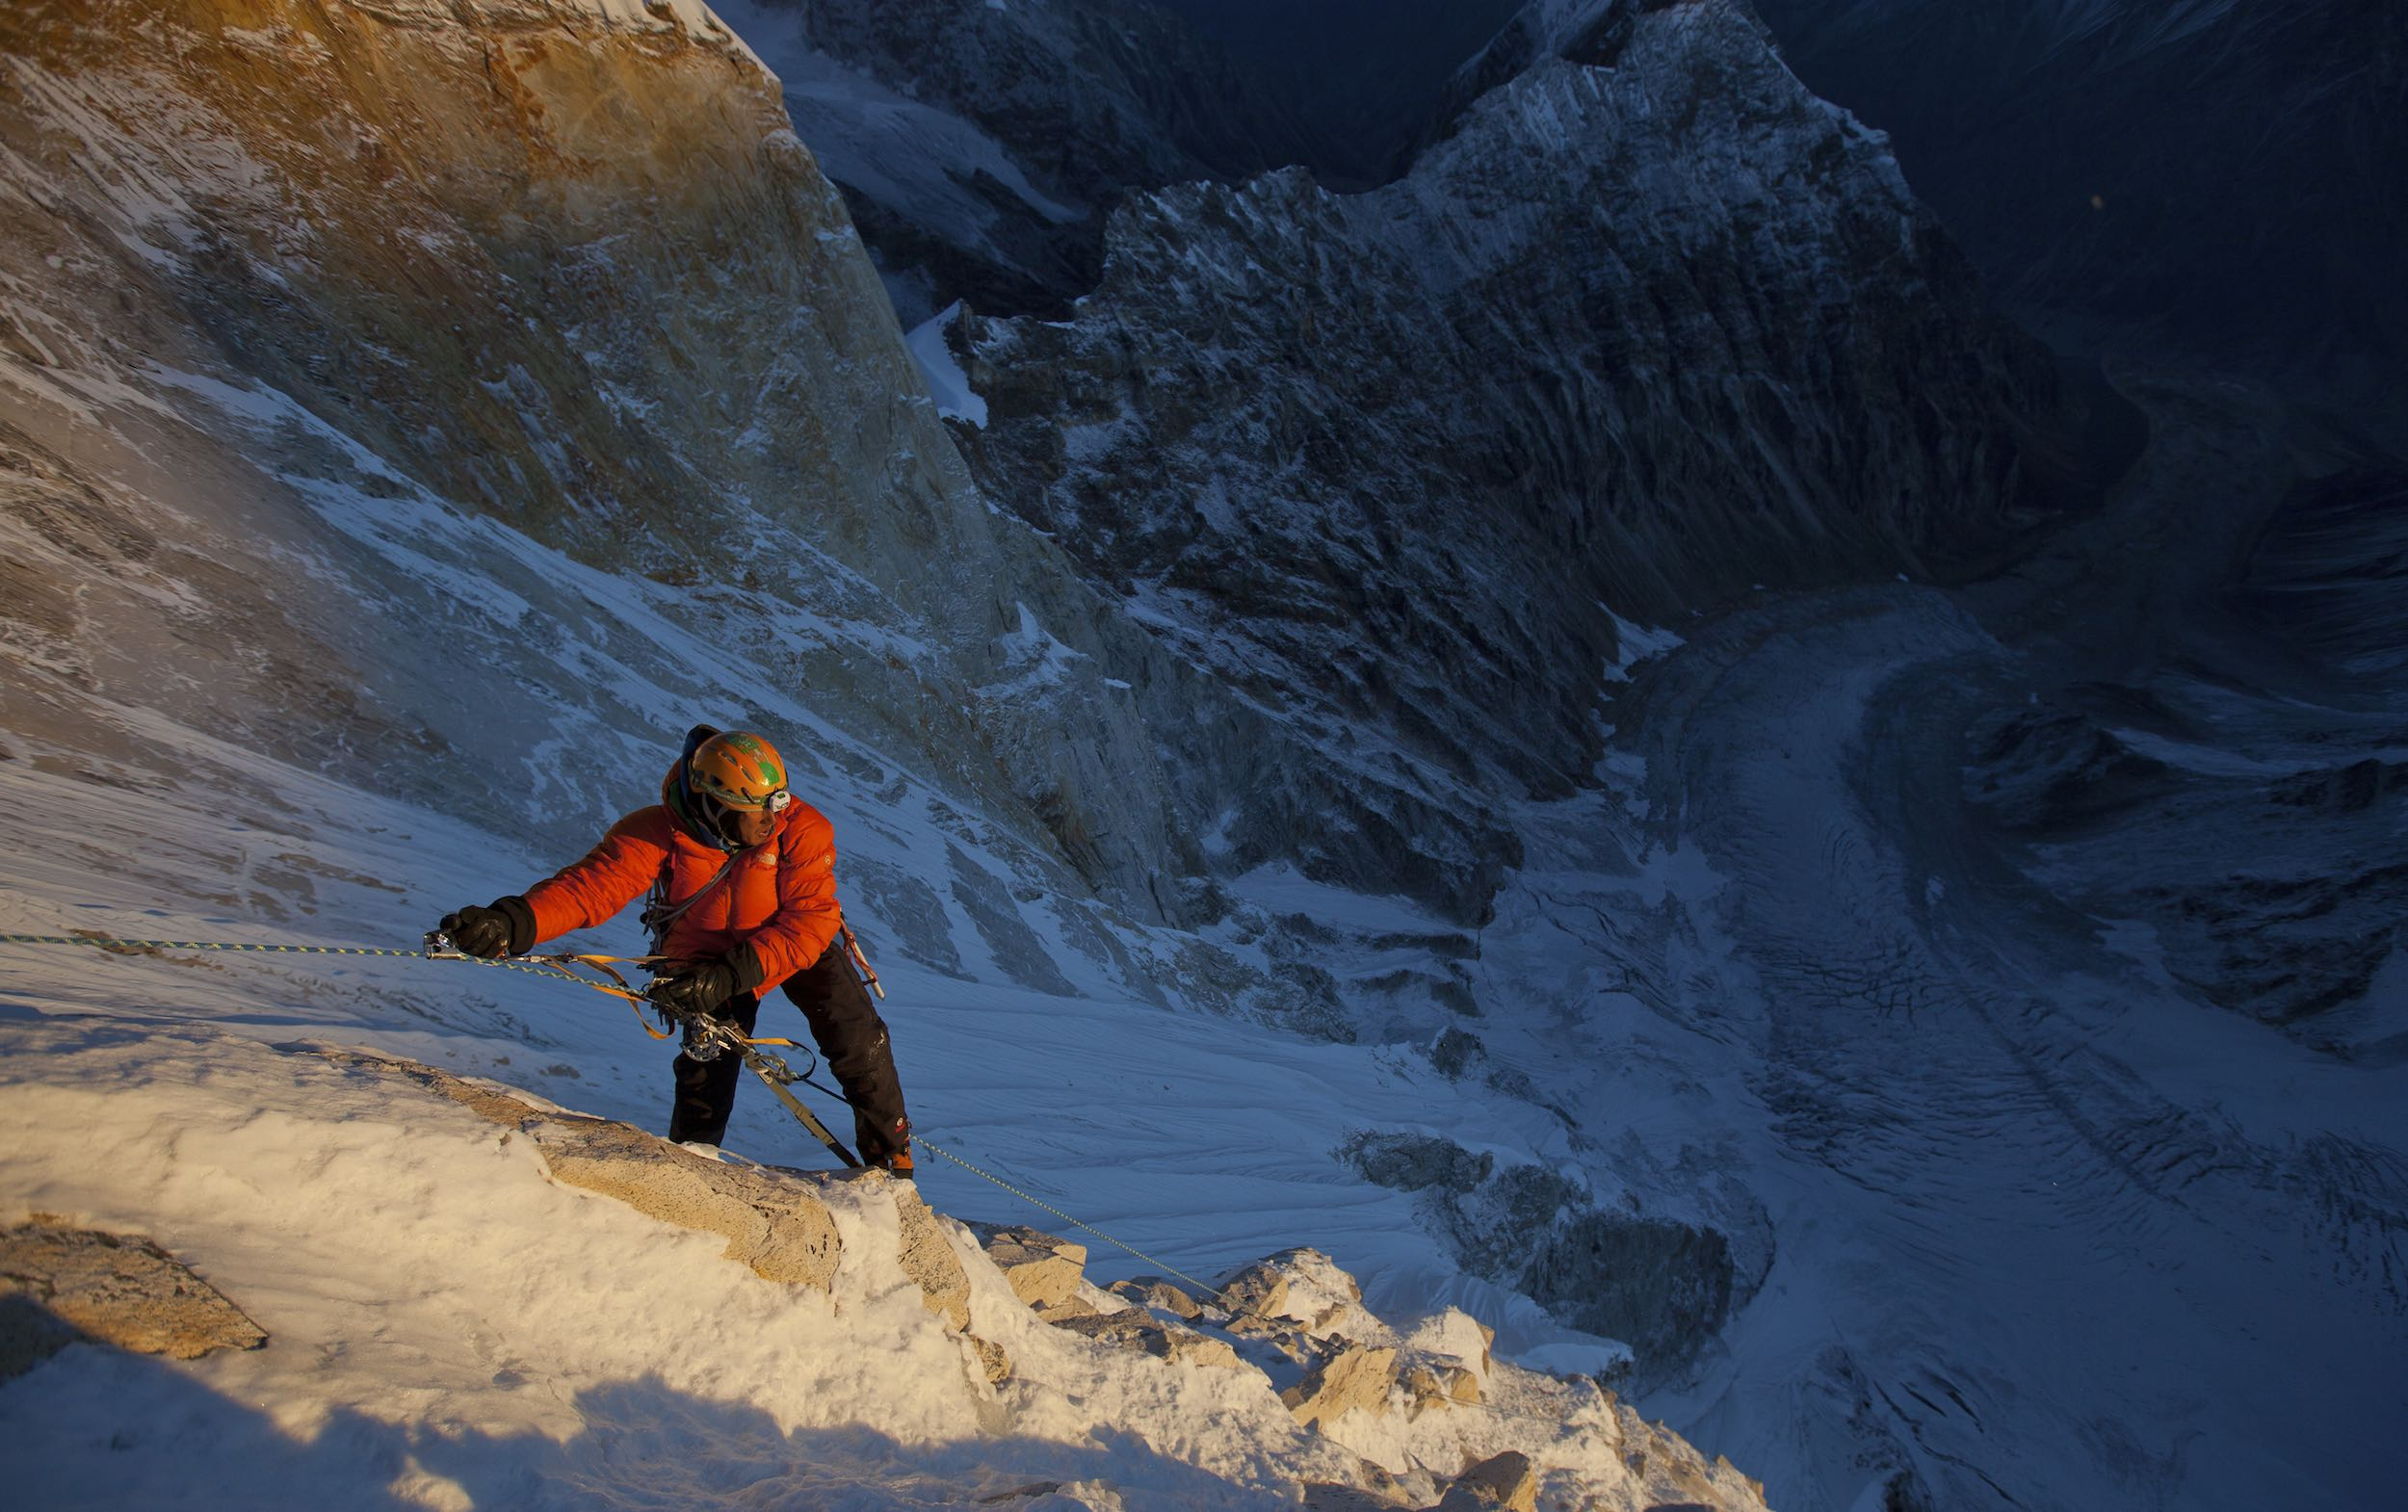 Jimmy Chin at first light on the 11th day of climbing. This was the summit day push.© Jimmy Chin from http://www.merufilm.com/